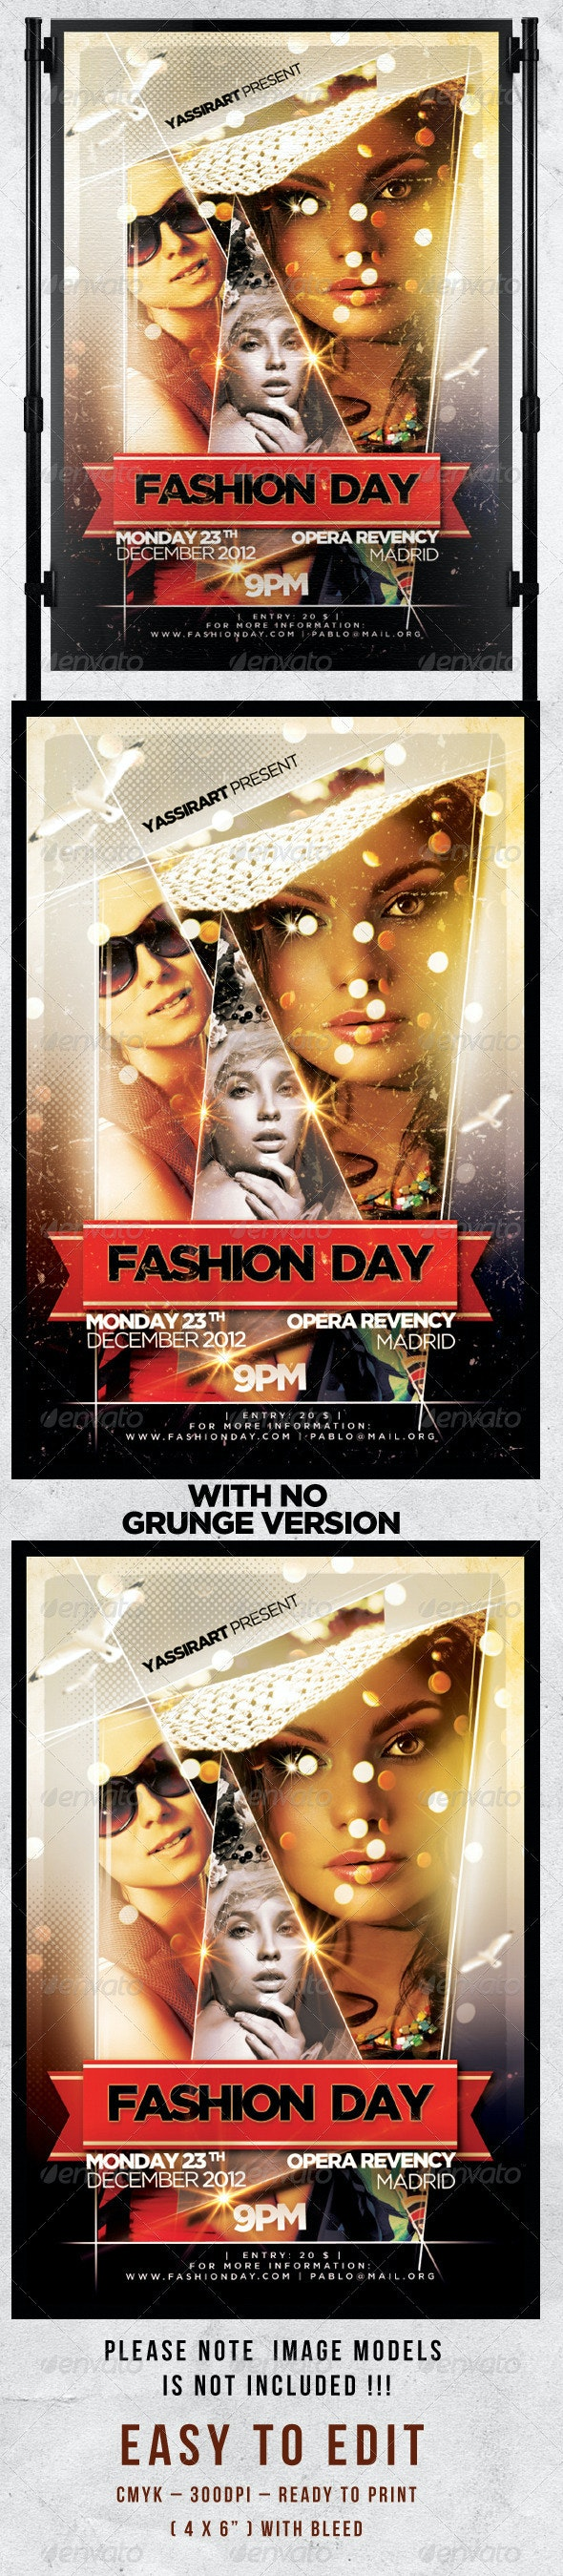 Fashion Day V2 Flyer Template - Events Flyers